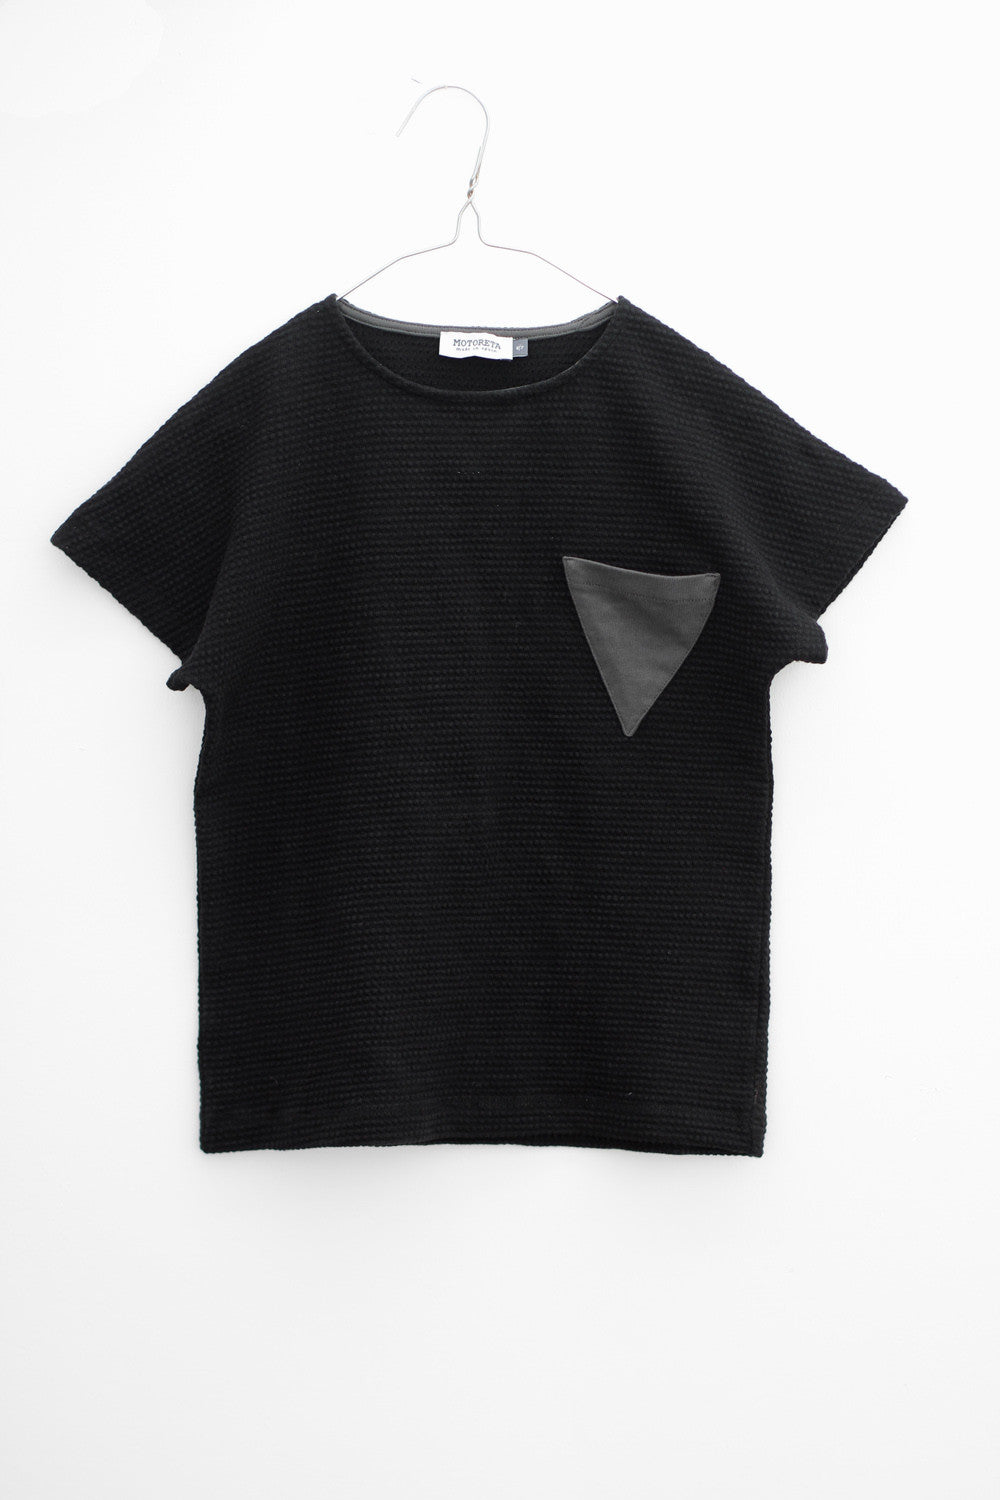 Motoreta Mirto Black T-shirt - Ladida